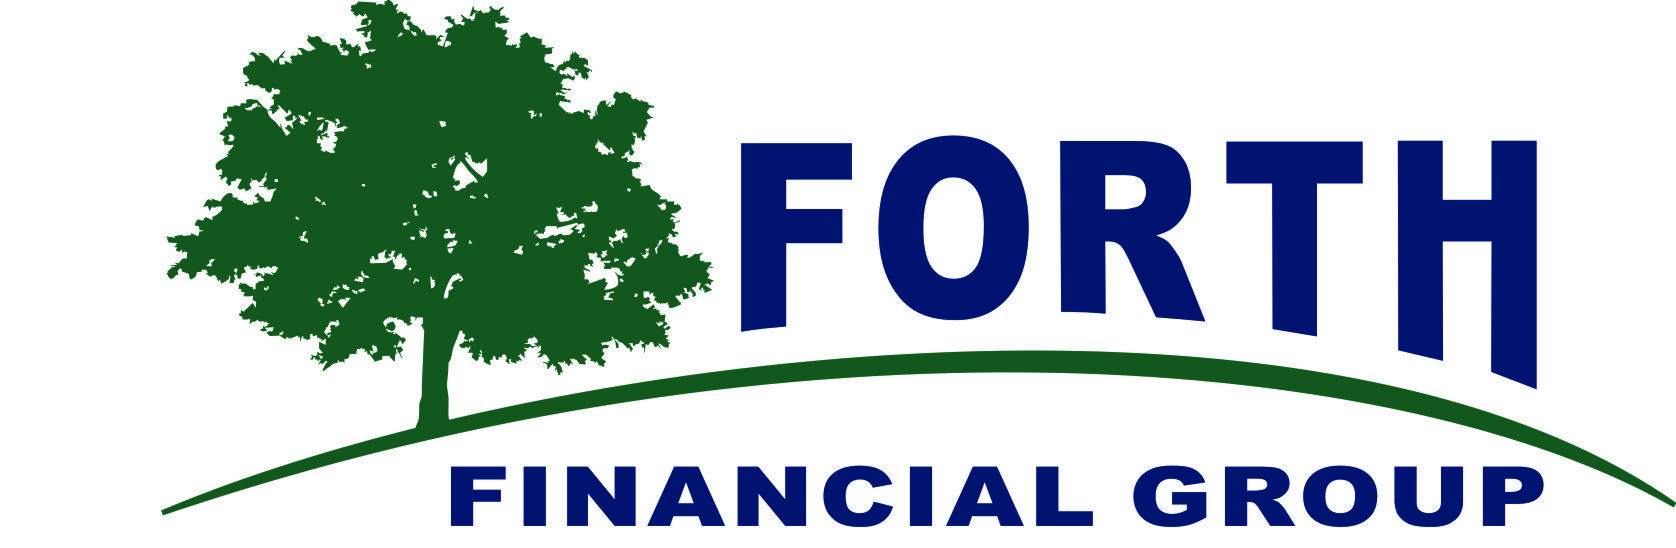 Forth Financial Group